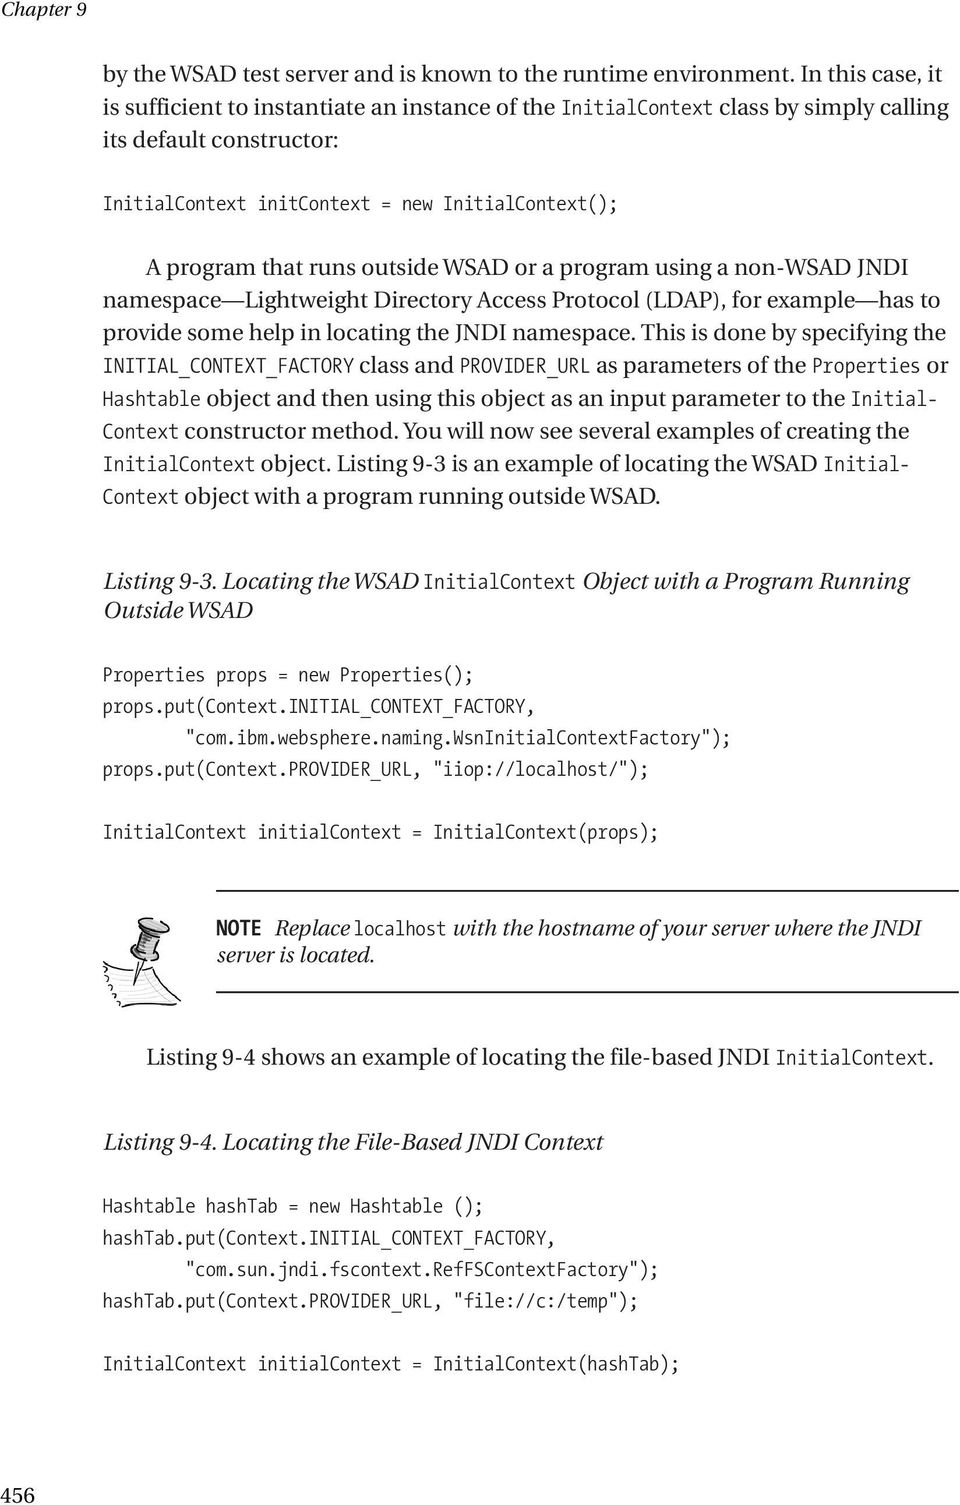 outside WSAD or a program using a non-wsad JNDI namespace Lightweight Directory Access Protocol (LDAP), for example has to provide some help in locating the JNDI namespace.